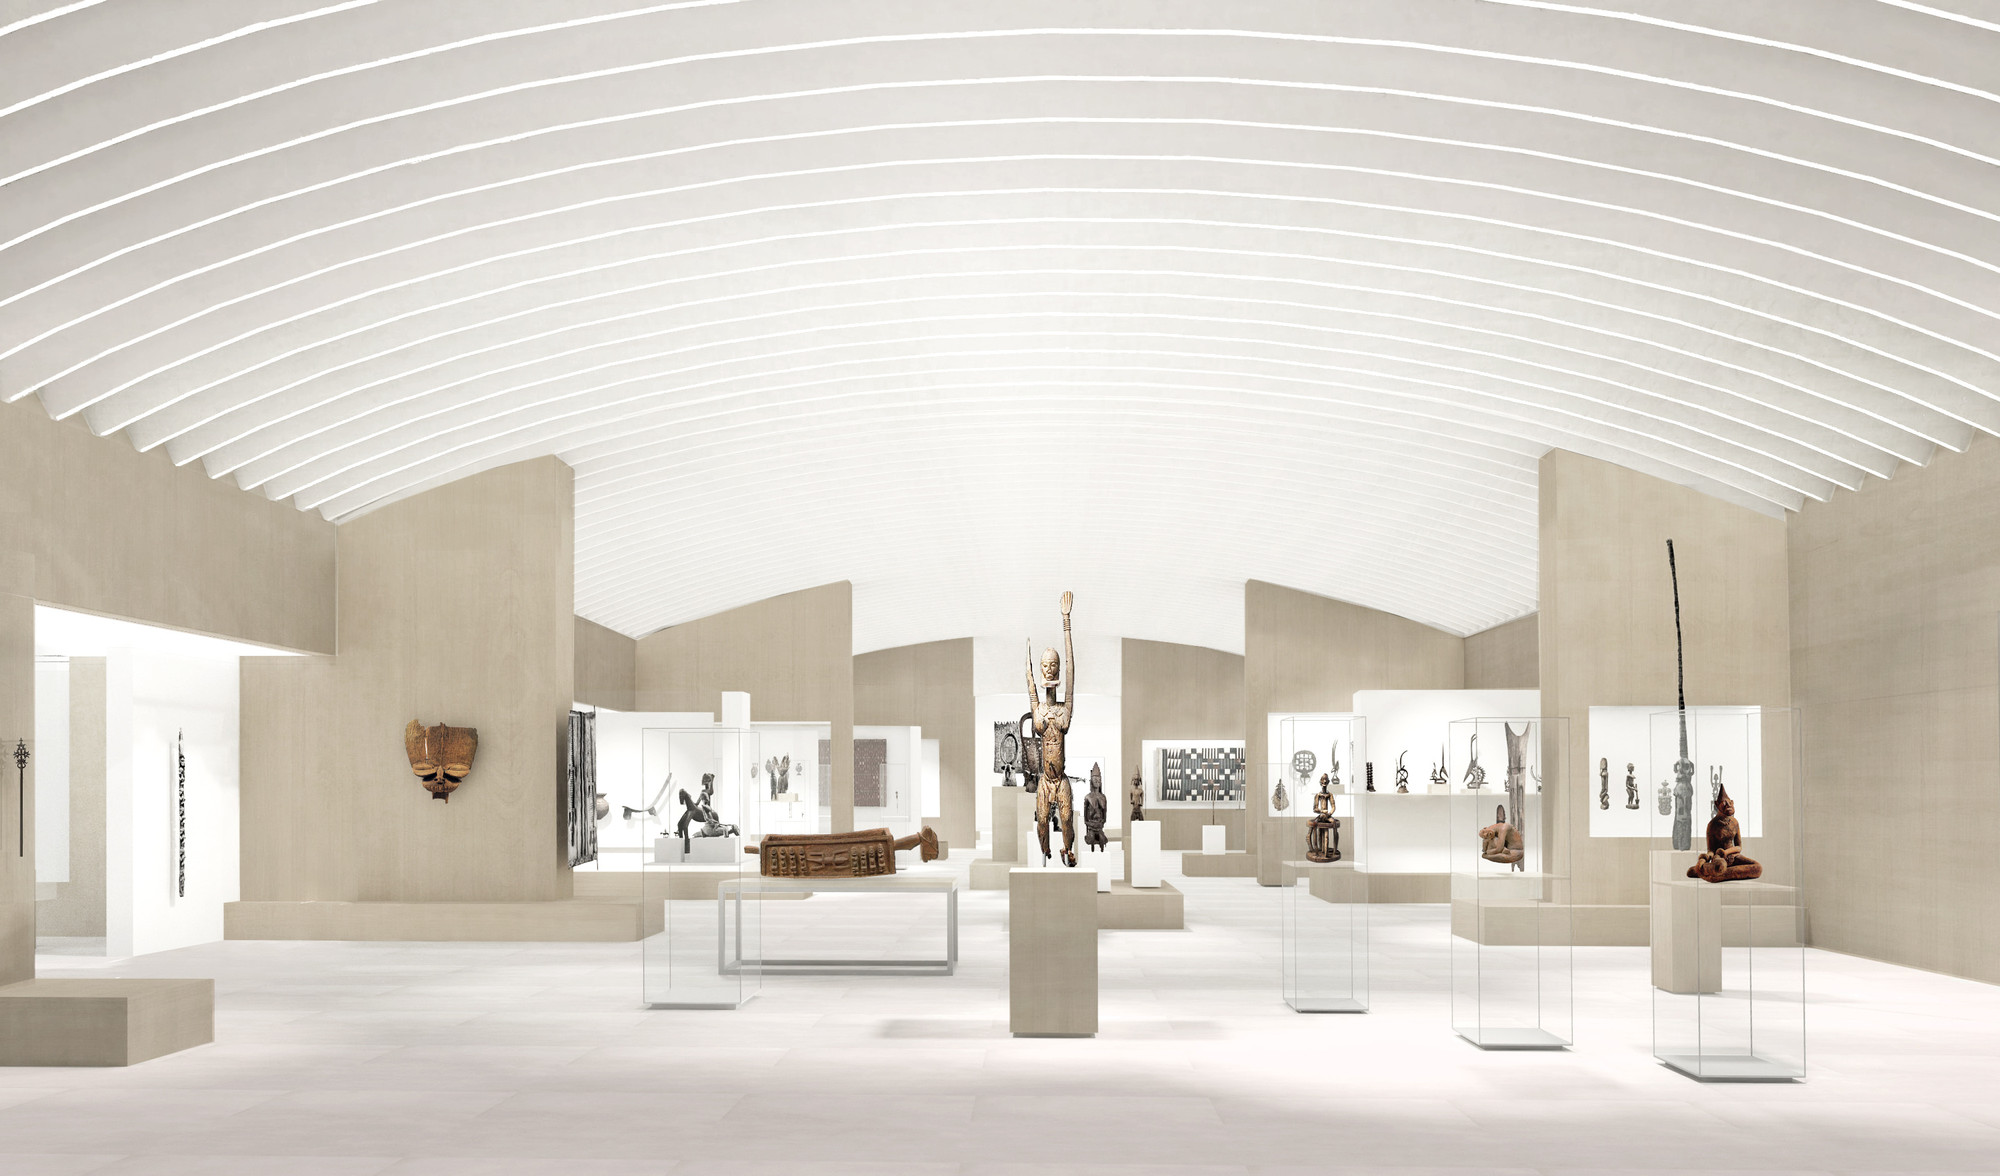 wHY's rendering of the African section of the galleries at The Metropolitan Museum of Art